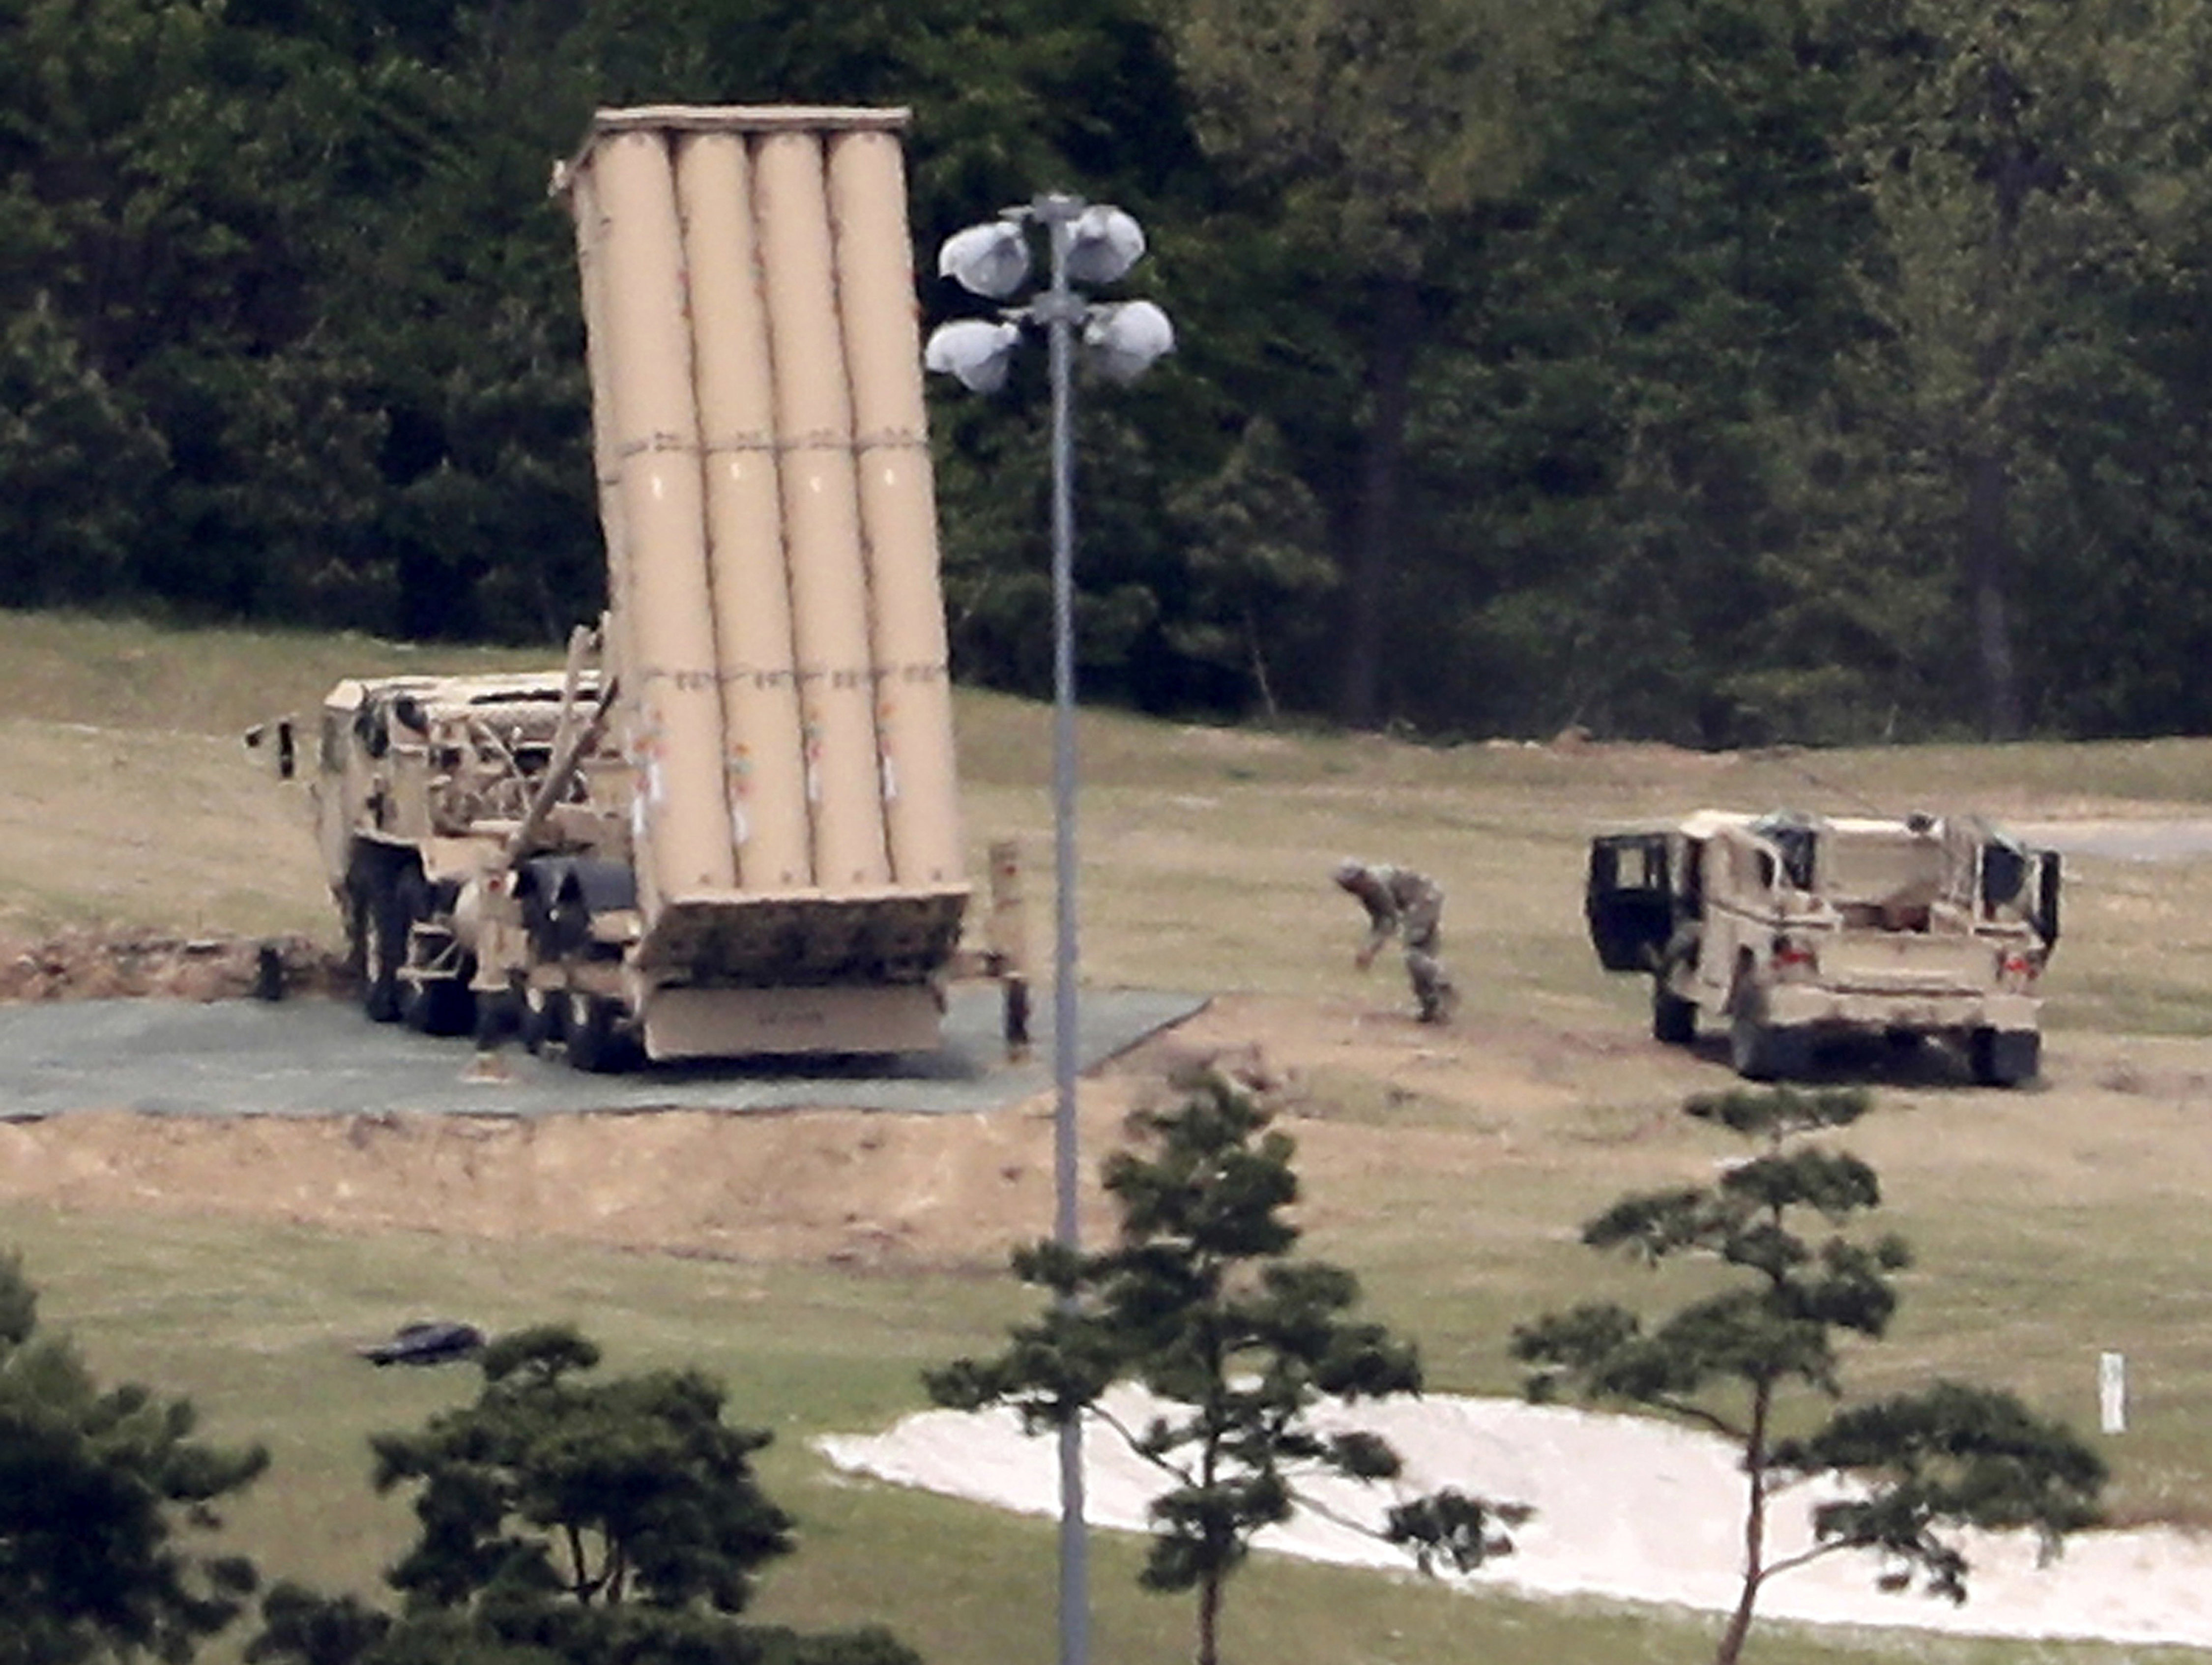 Pentagon looks to adjust missile defense policy to include